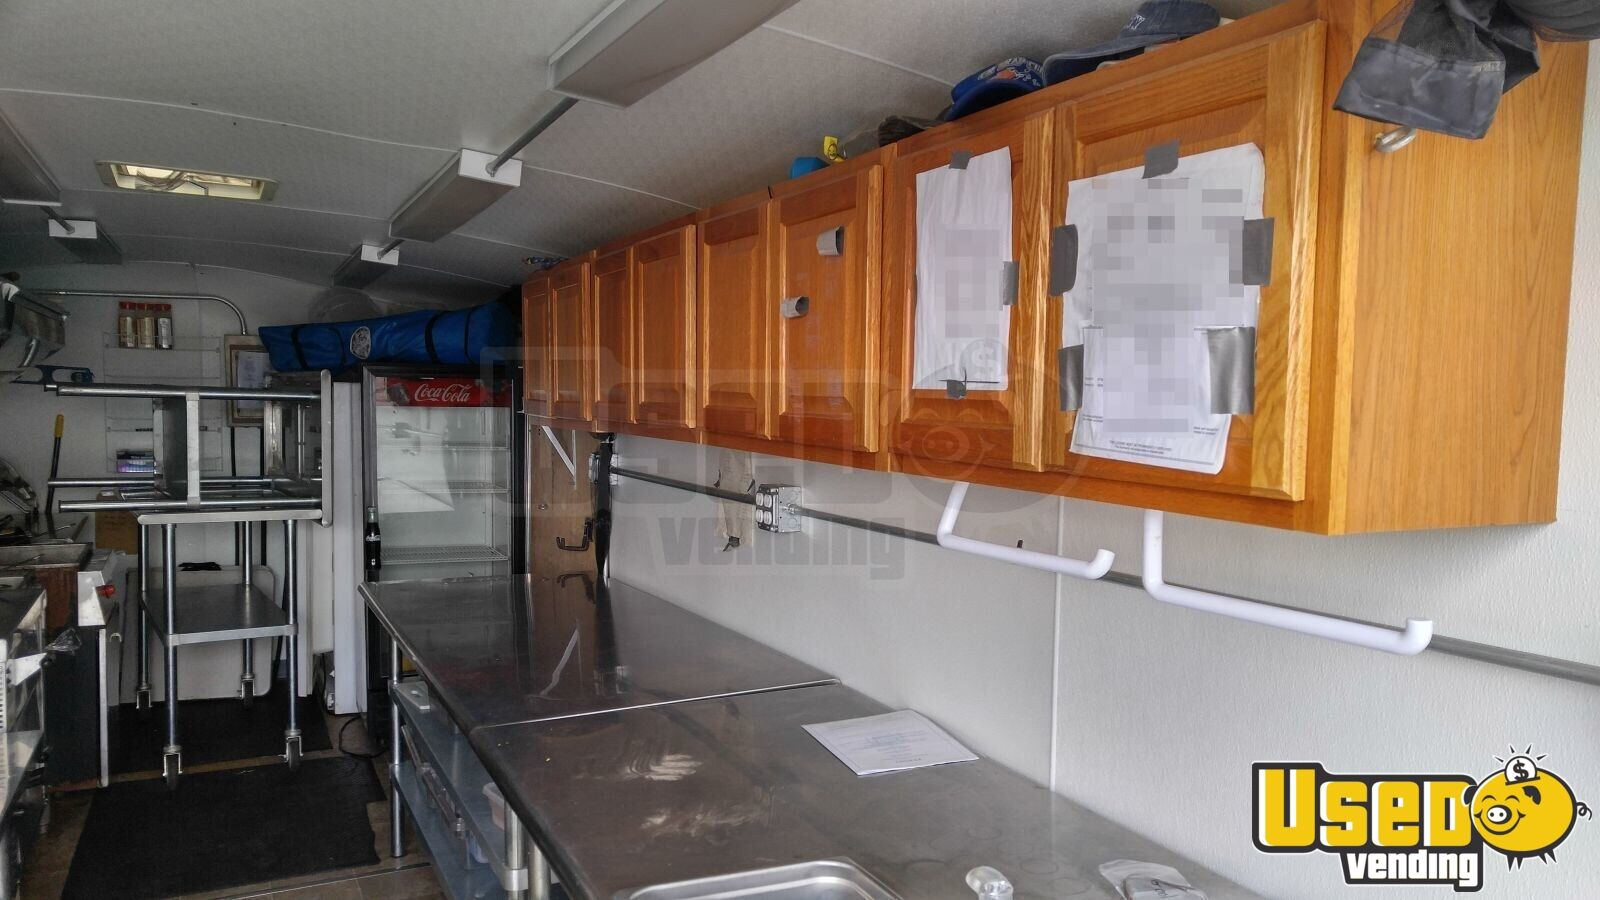 2005 Hallmark All-purpose Food Trailer Triple Sink Tennessee for Sale - 21